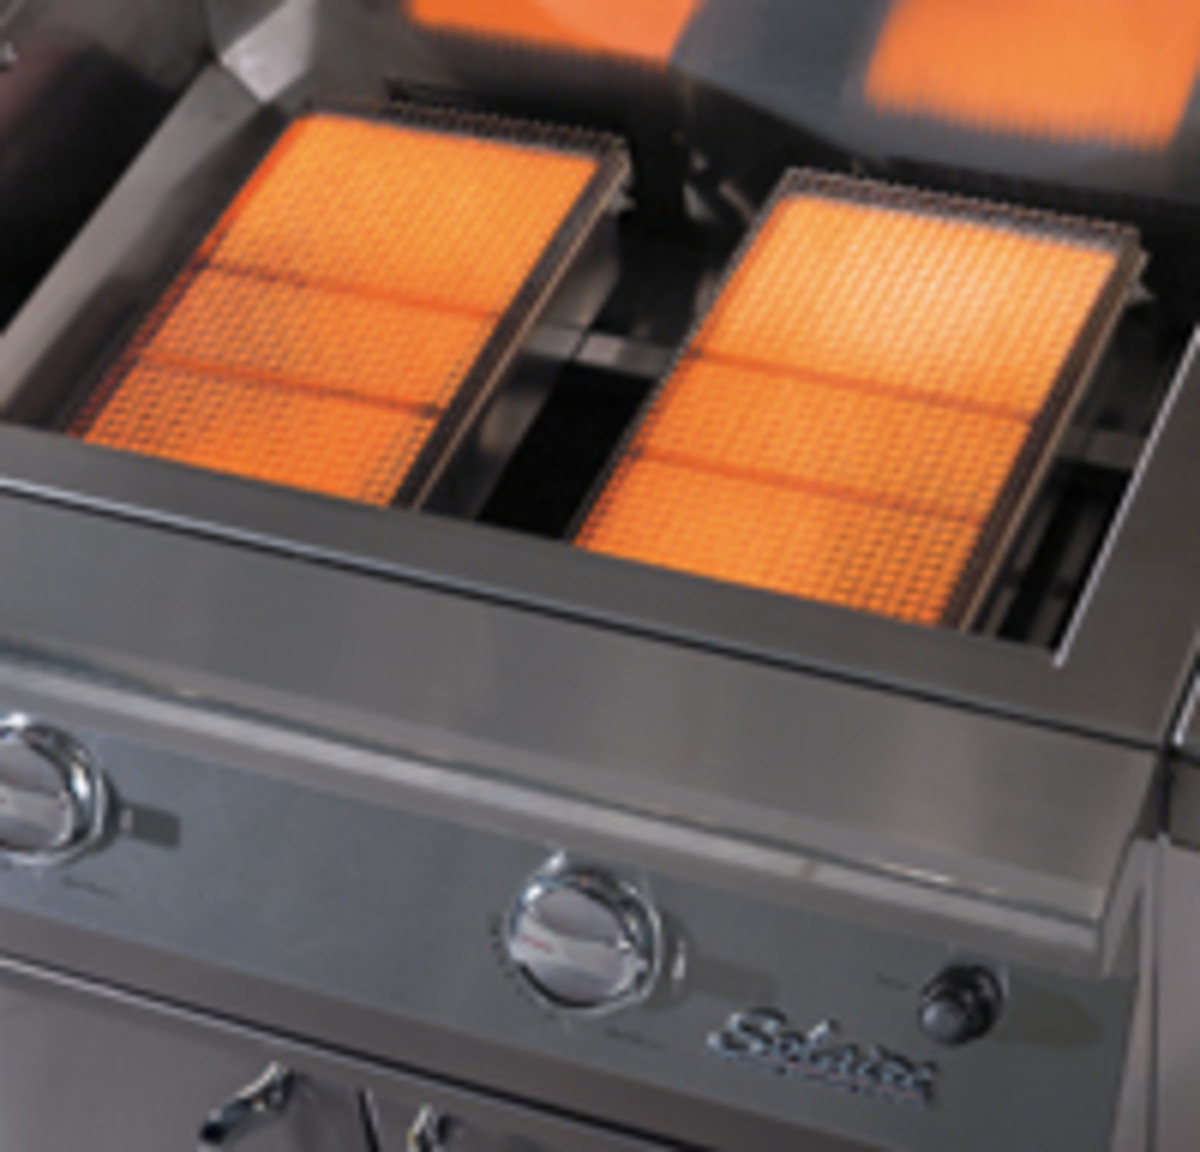 Infrared grills pressurize gas in the burner to create intense direct heat.